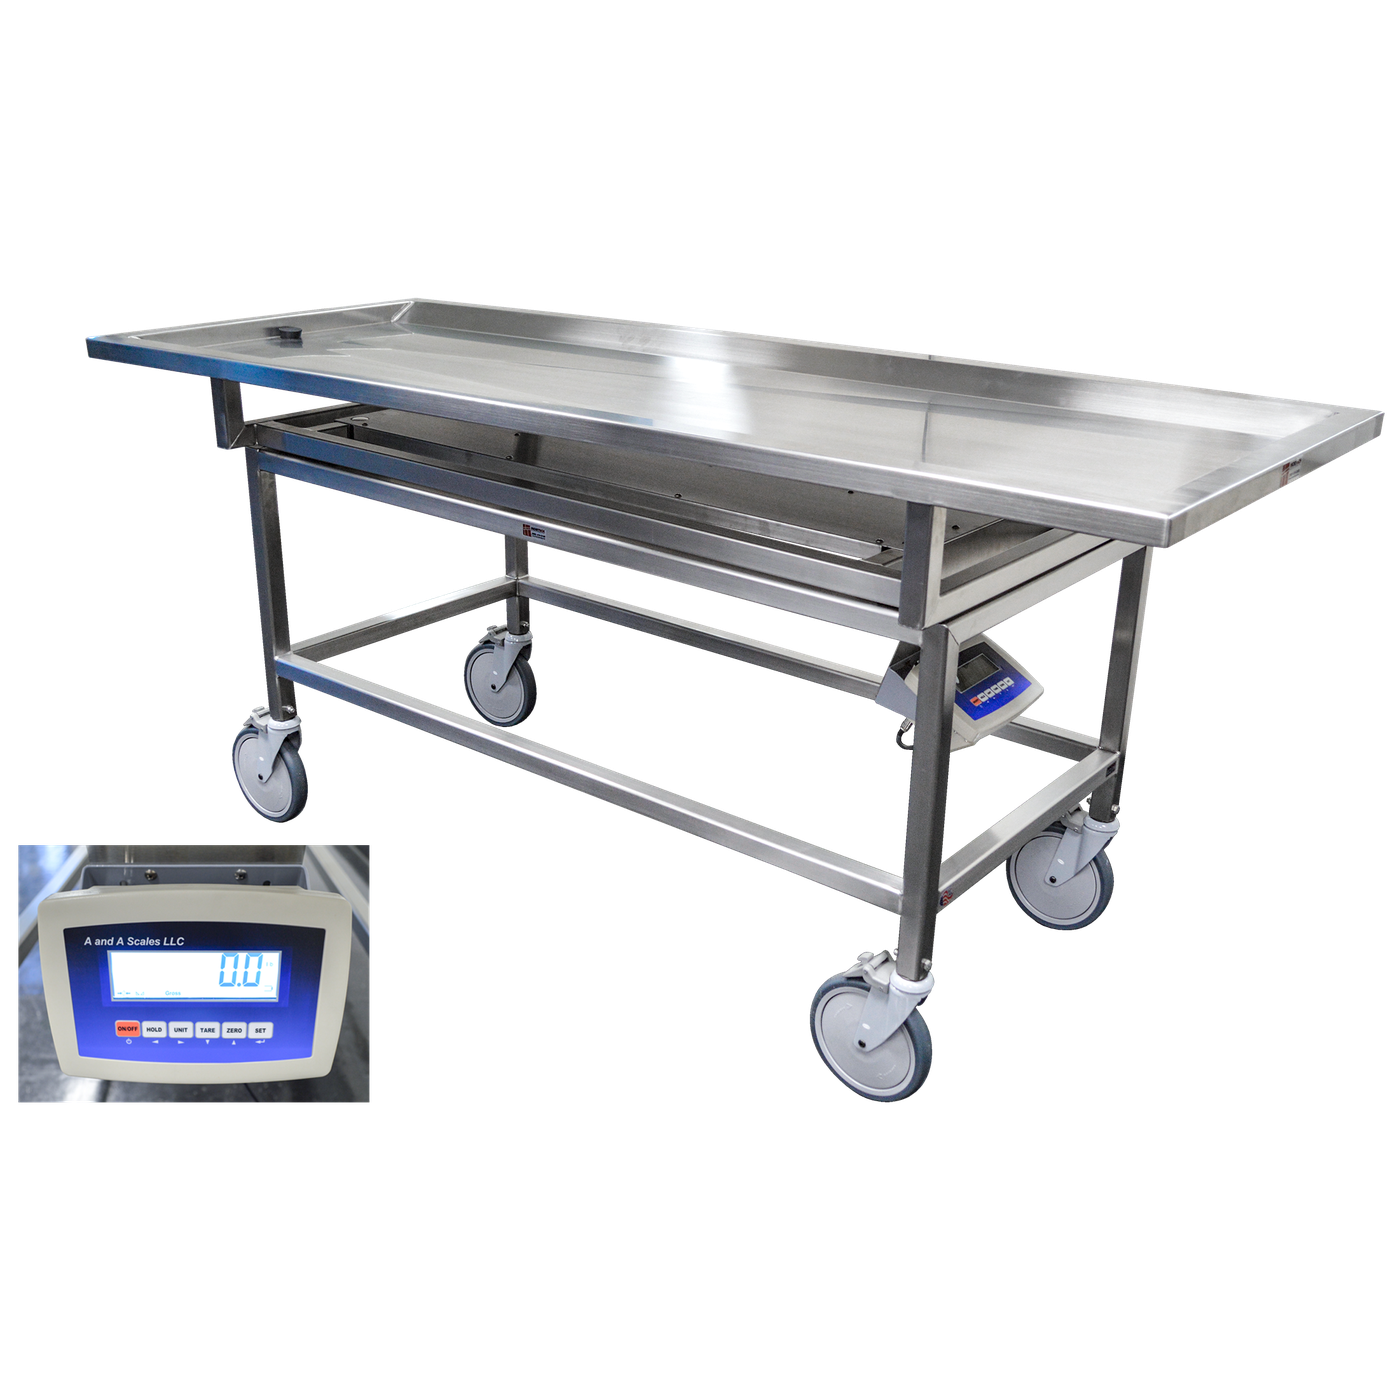 Autopsy Carrier with Scale-Body Transporter-Mortech Manufacturing Company Inc. Quality Stainless Steel Autopsy, Morgue, Funeral Home, Necropsy, Veterinary / Anatomy, Dissection Equipment and Accessories